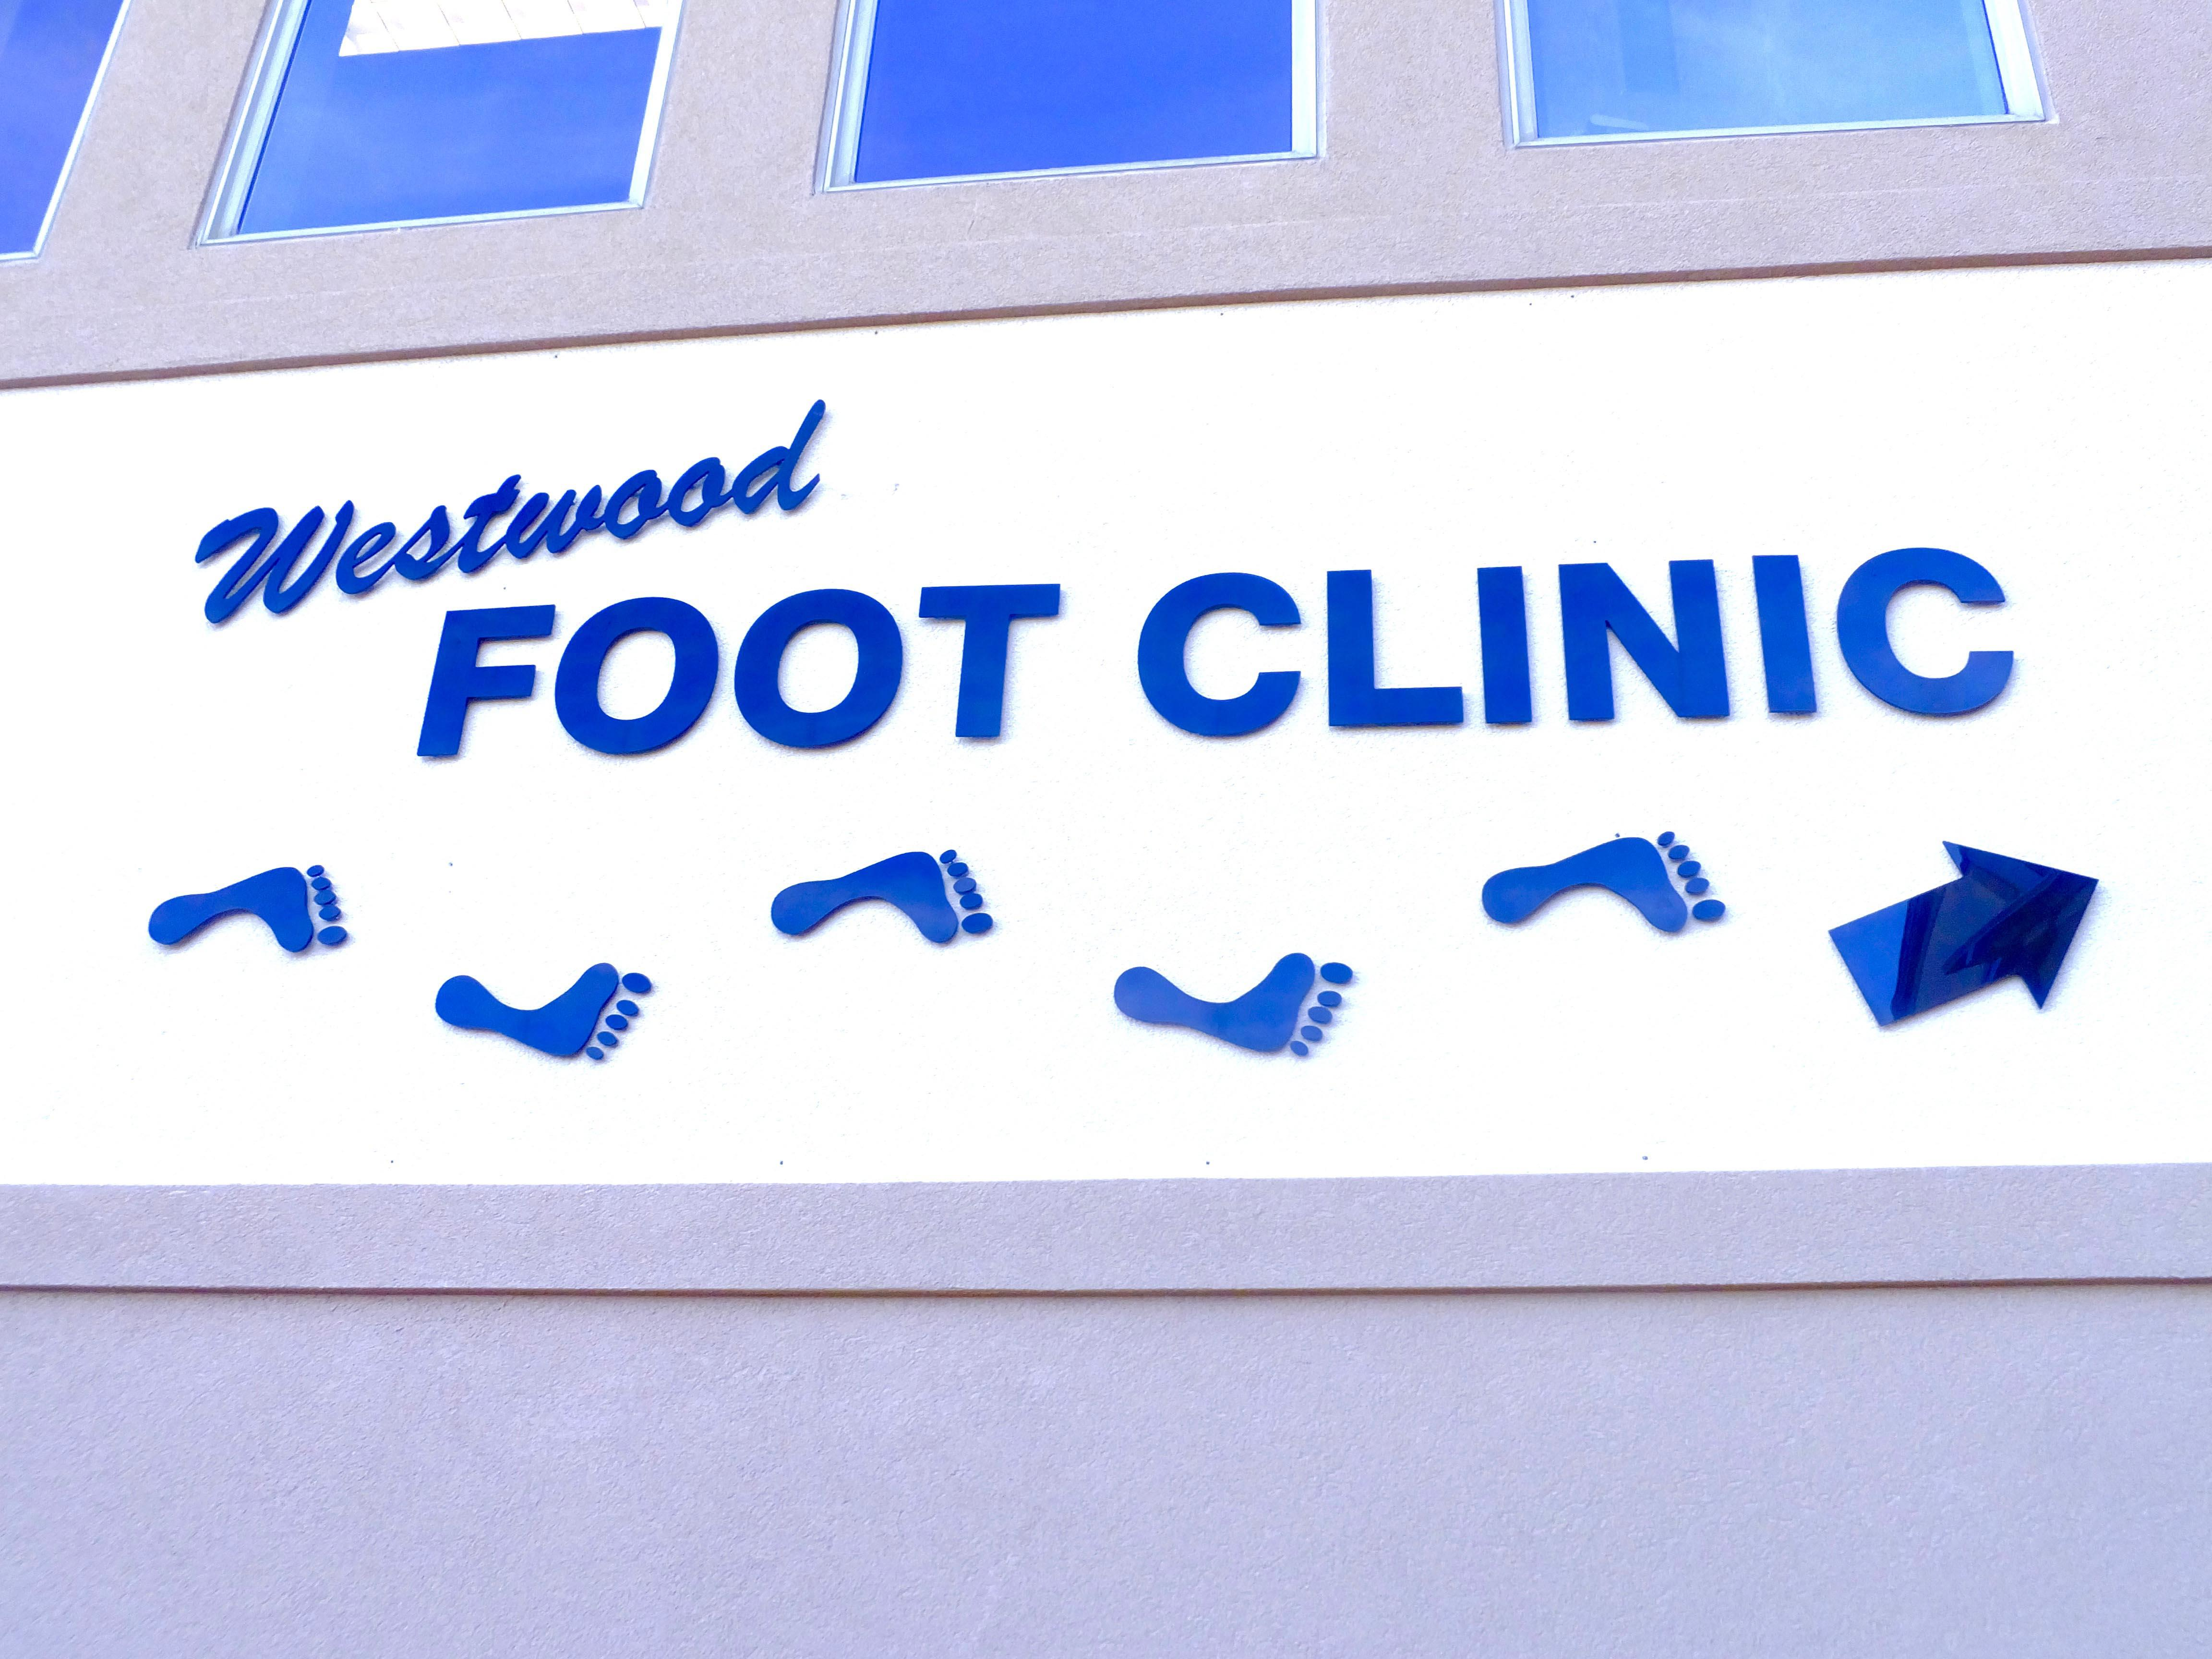 Westwood Foot Clinic image 6